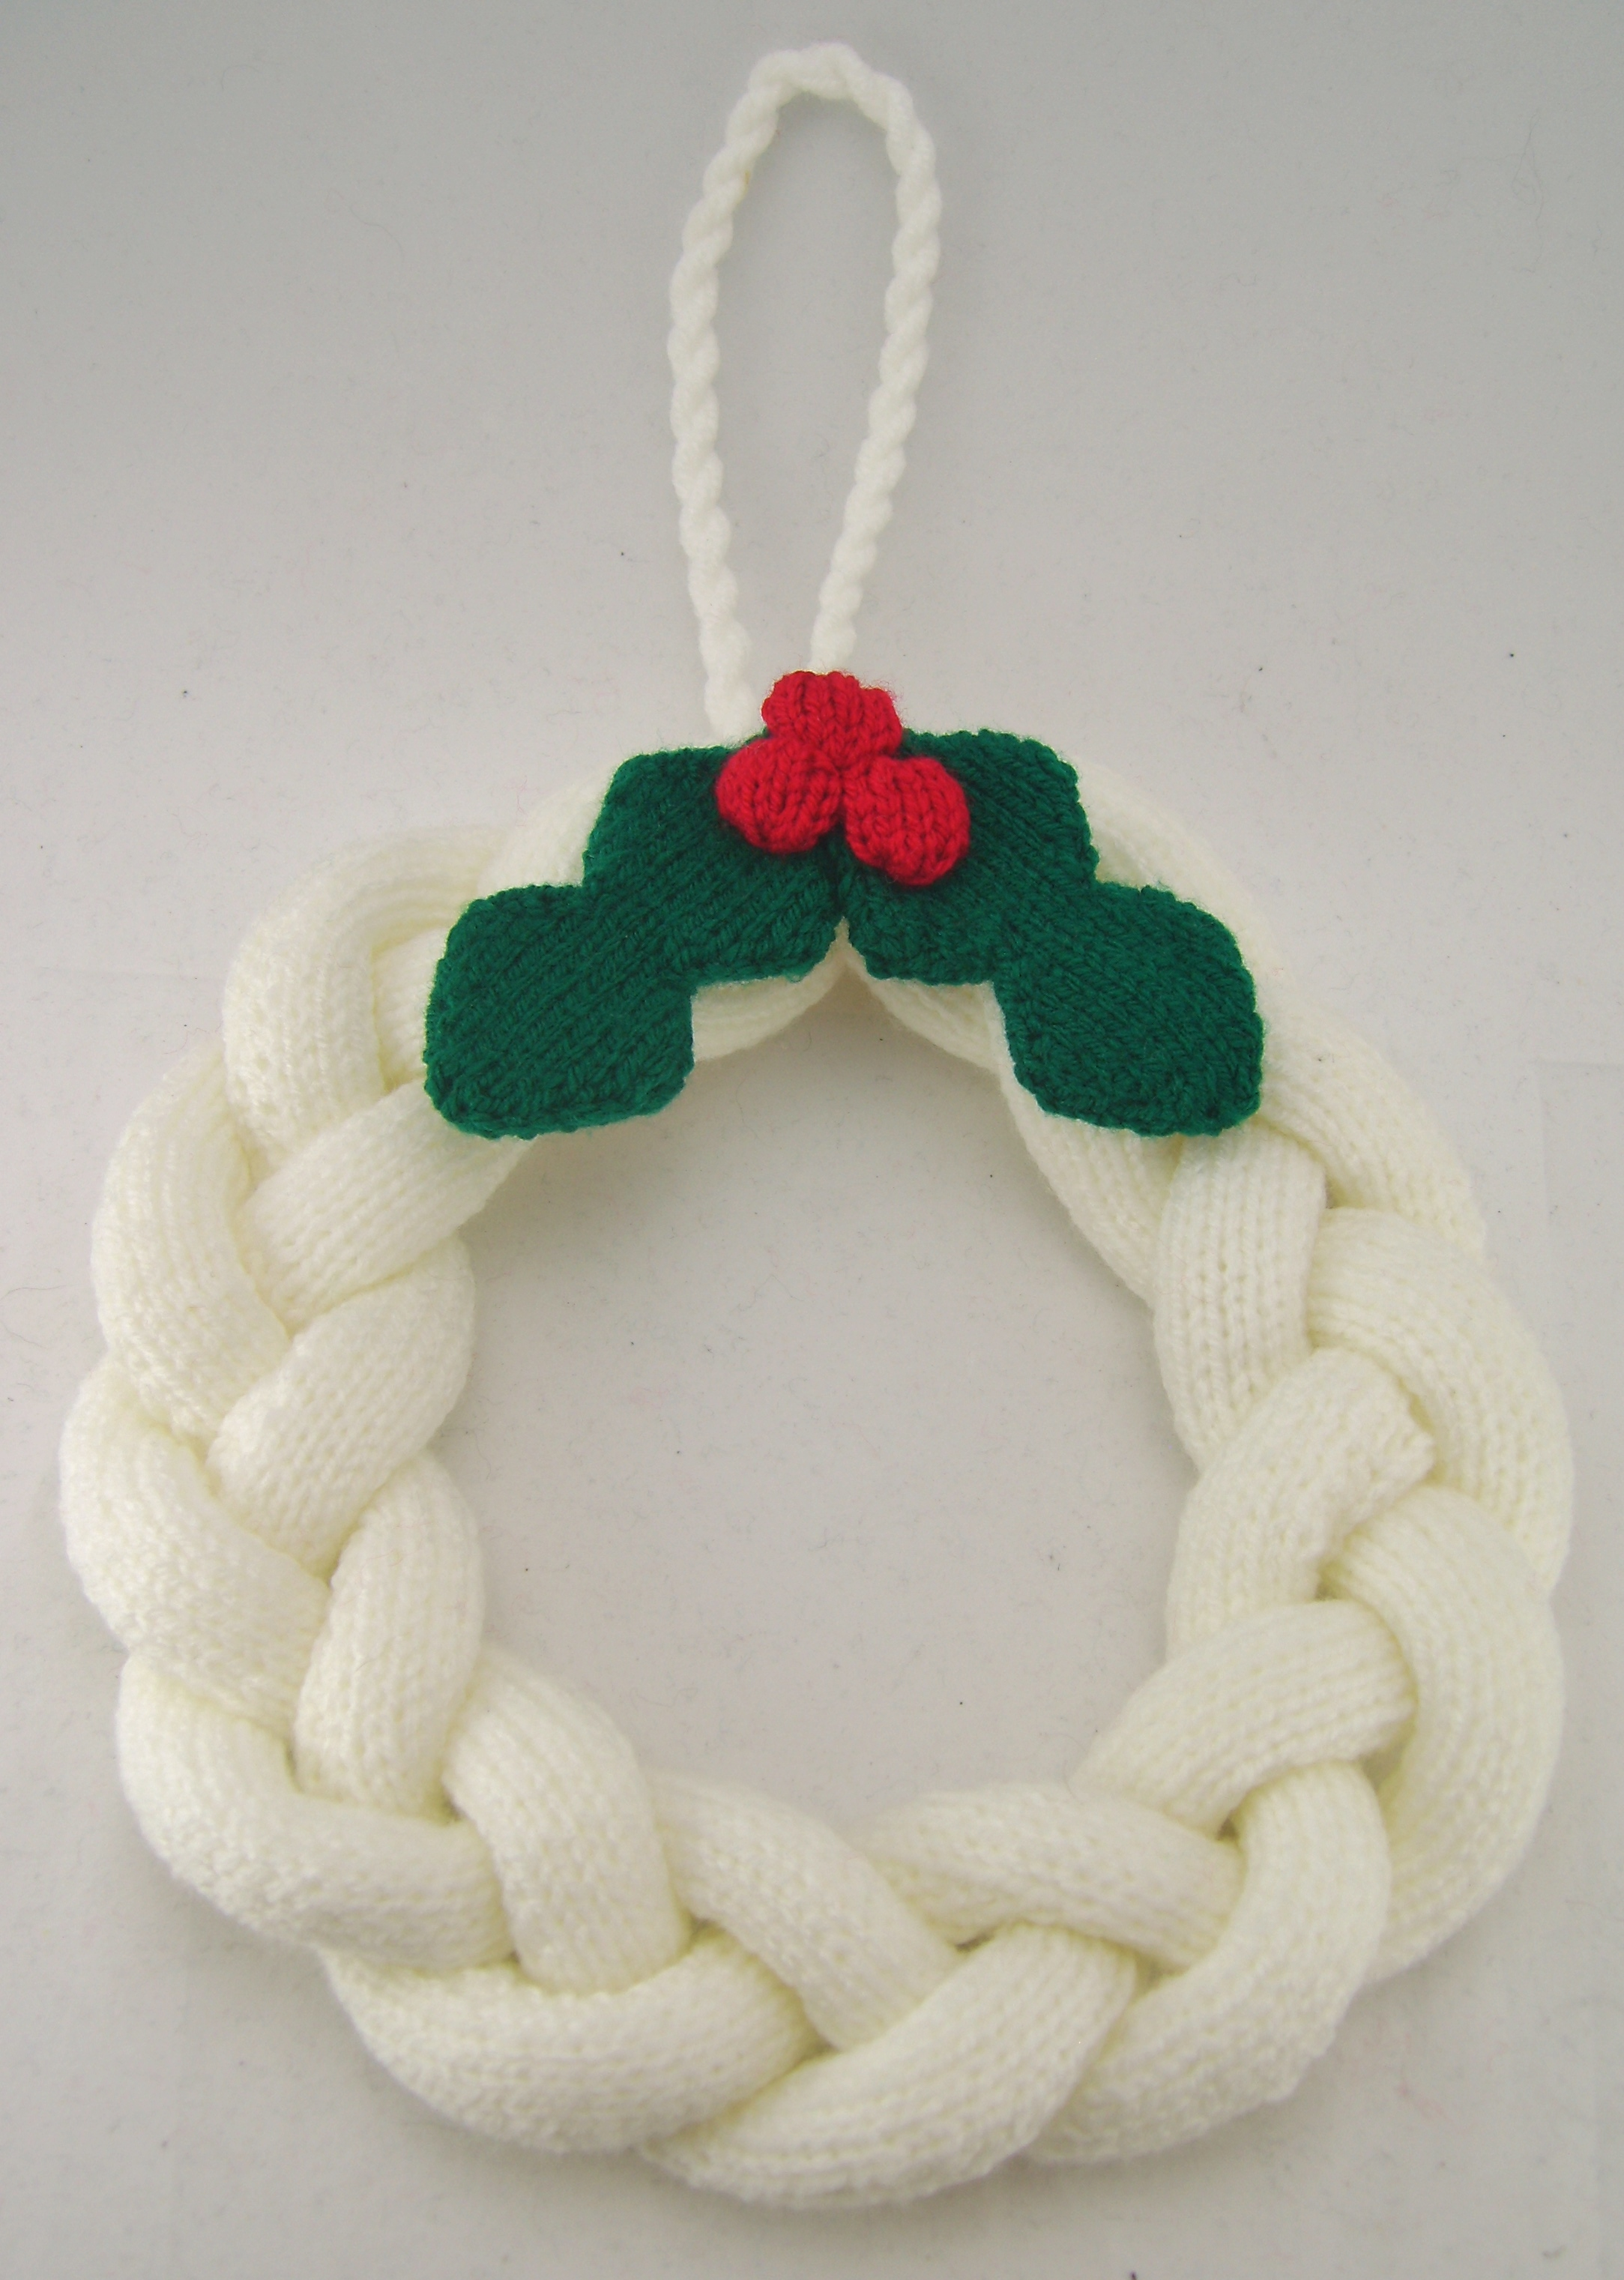 Simple Knitted Christmas Wreath Knitting Pattern – Knitting by Post